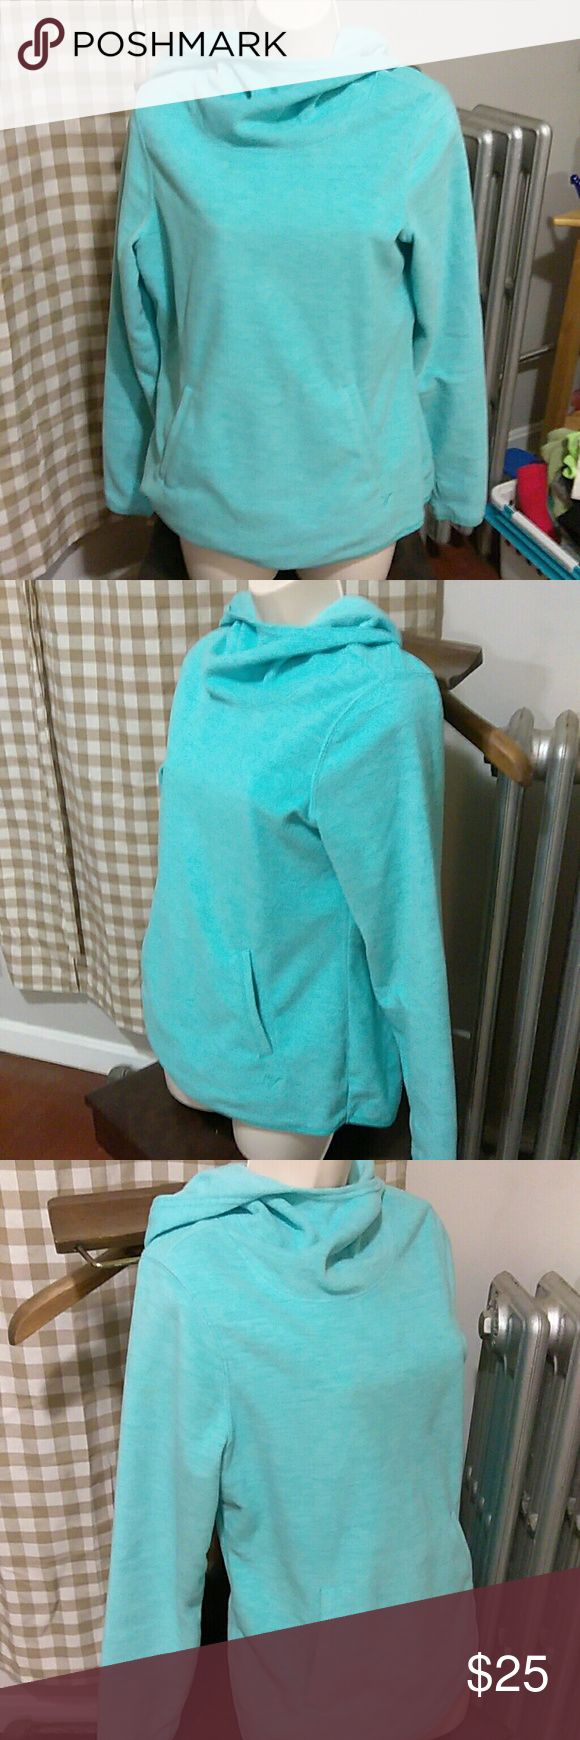 *Old Navy* Seafoam Top Extra Comfortable *Old Navy* Seafoam S/P Active Pullover Hooded Top with 2 front pockets and thumb hole Sleeves!! In Excellent Condition! From a smoke free home!! Old Navy Tops Sweatshirts & Hoodies